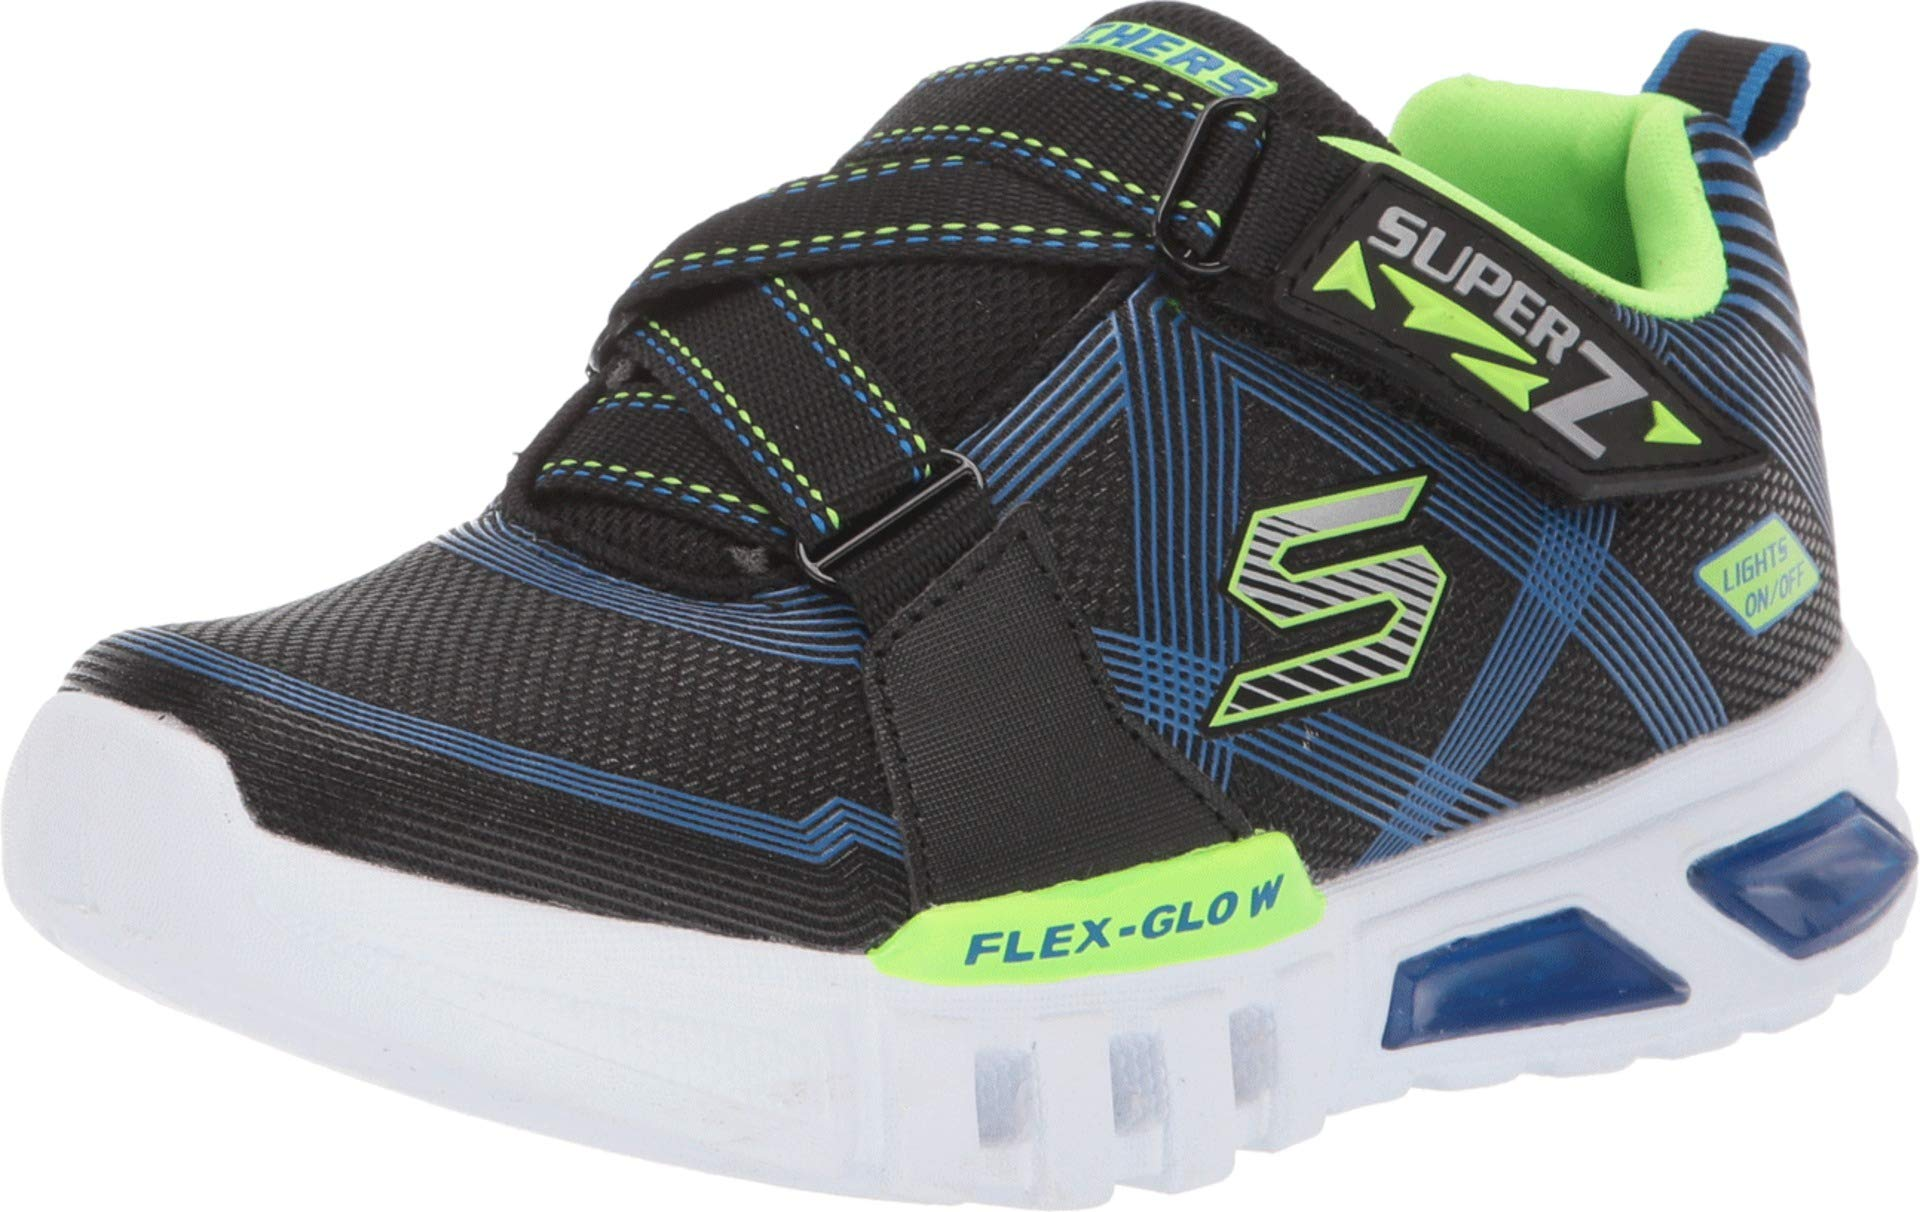 Skechers Kids Boy's Flex-Glow Parrox 90543L Lights (Little Kid/Big Kid) Blue/Black/Lime 13 M US Little Kid